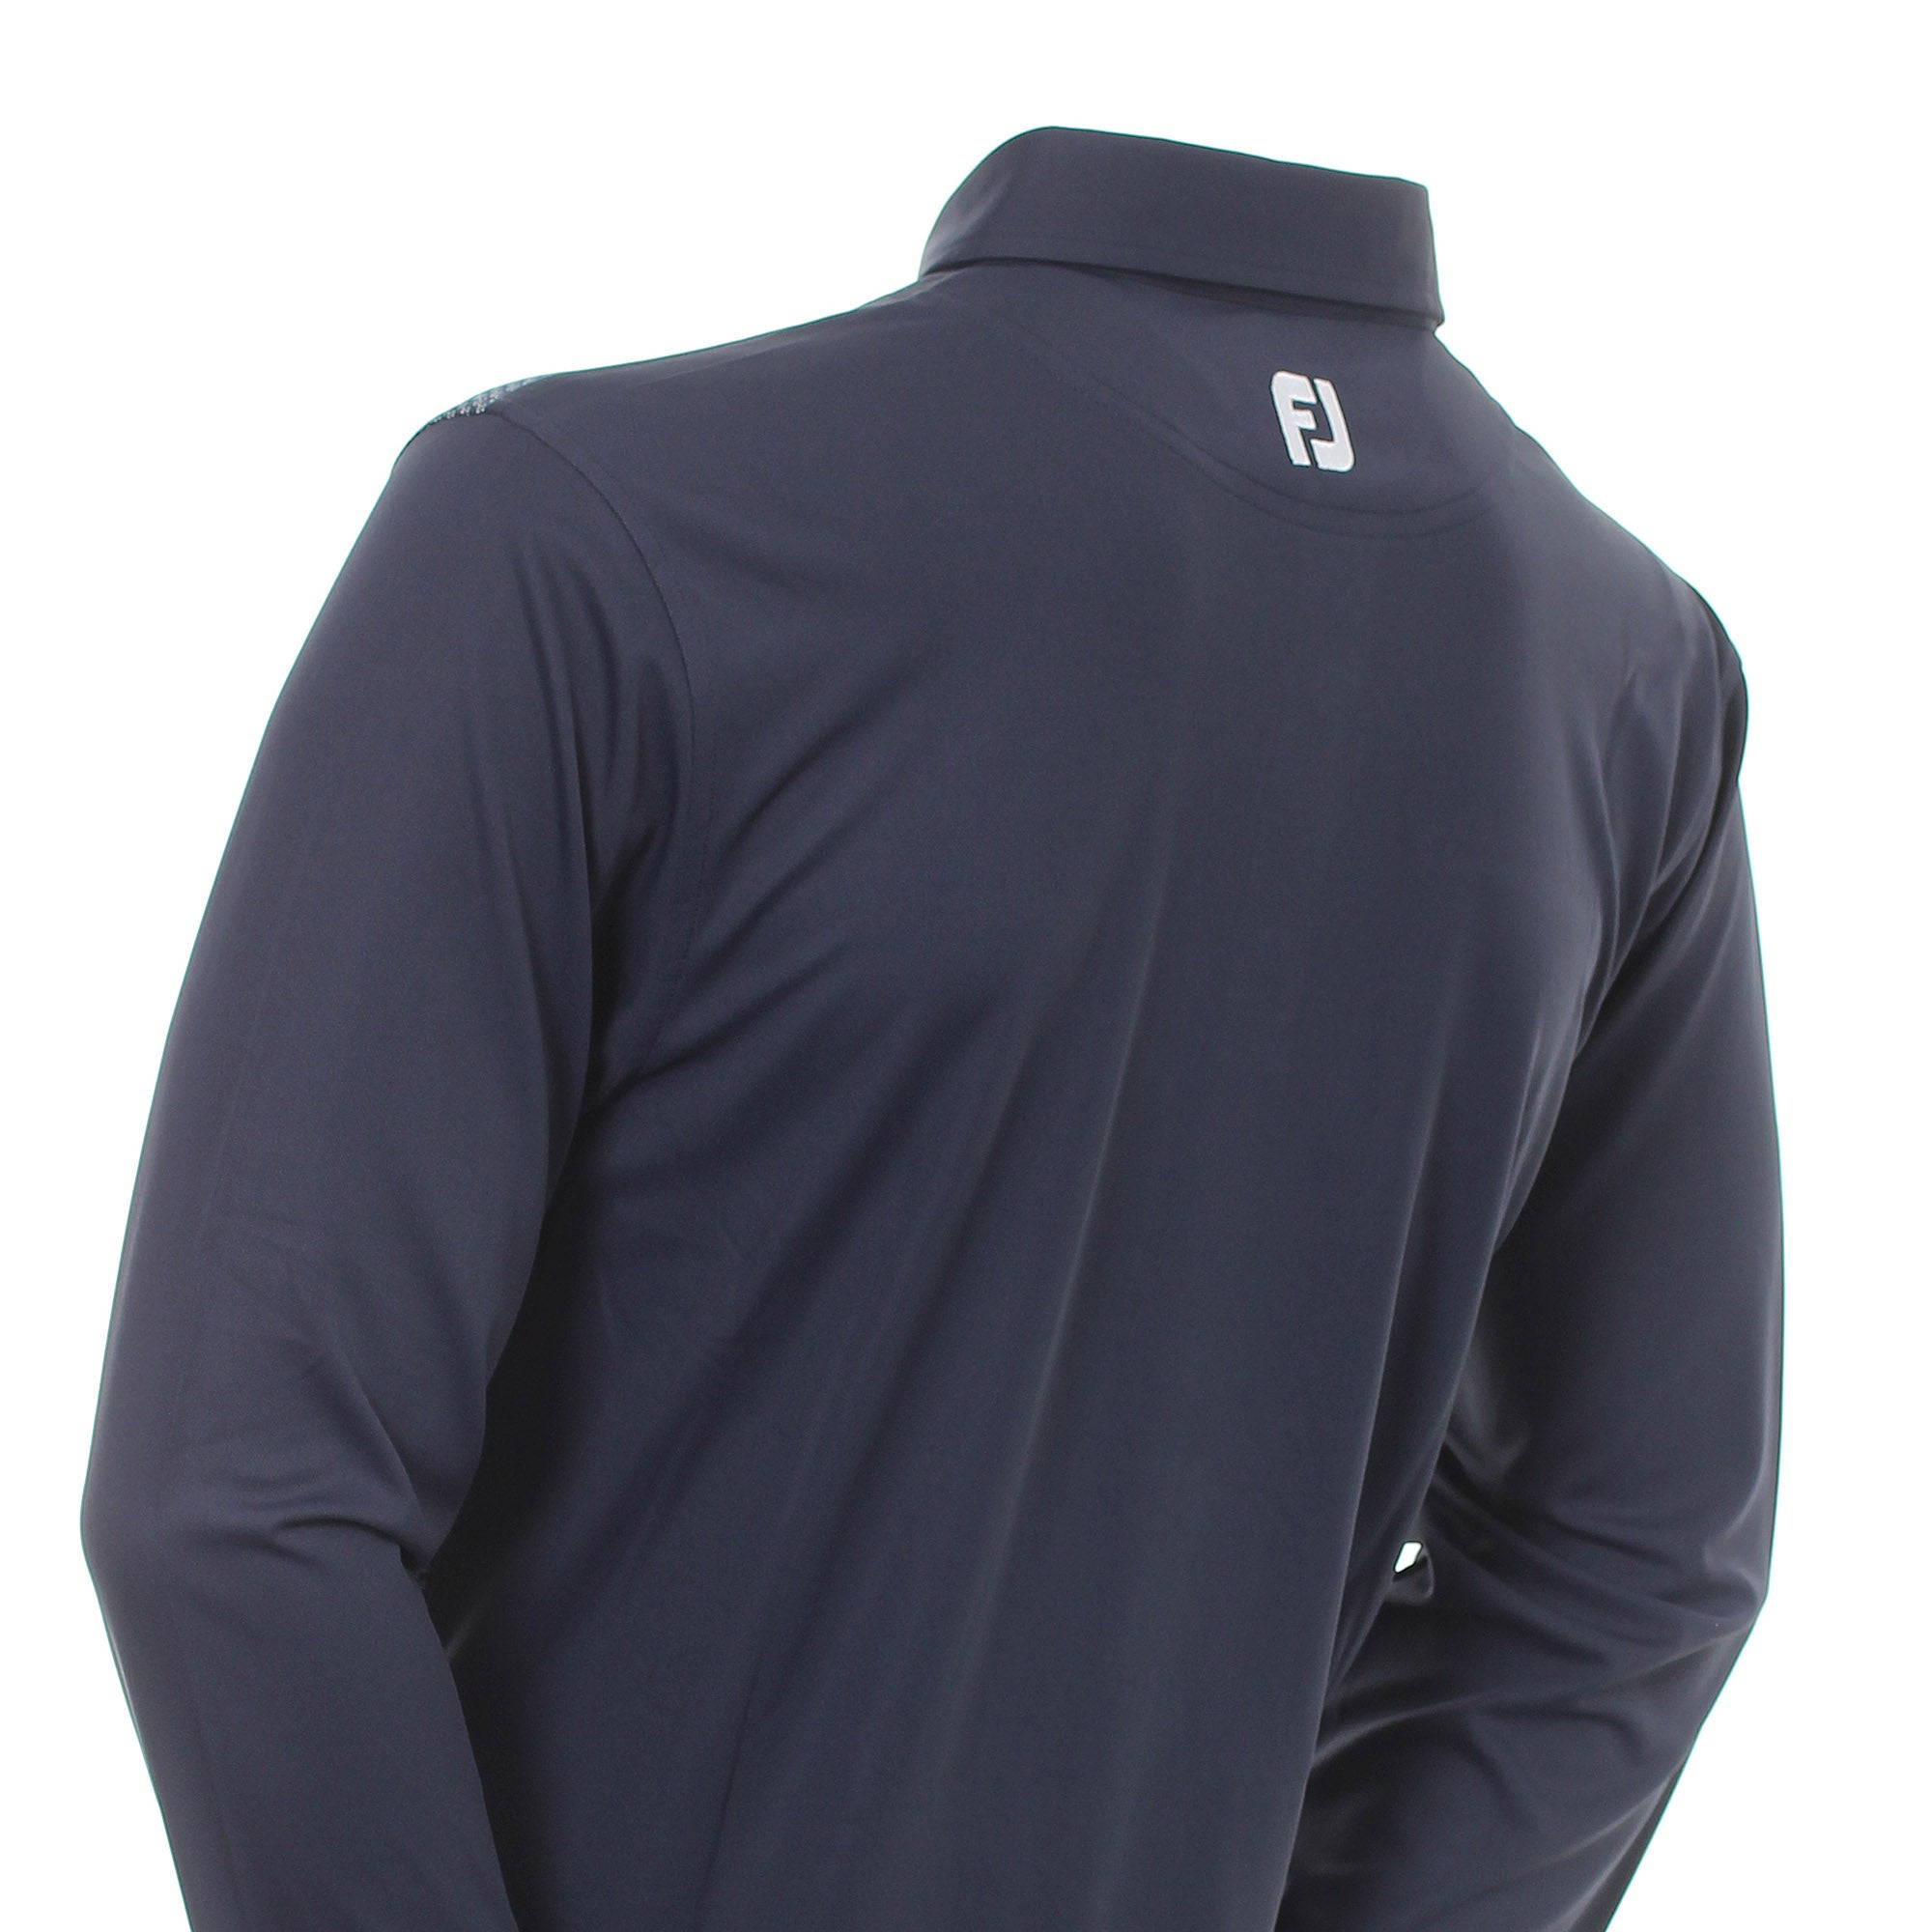 FootJoy Dot Geo Jacquard Long Sleeve Shirt 96956